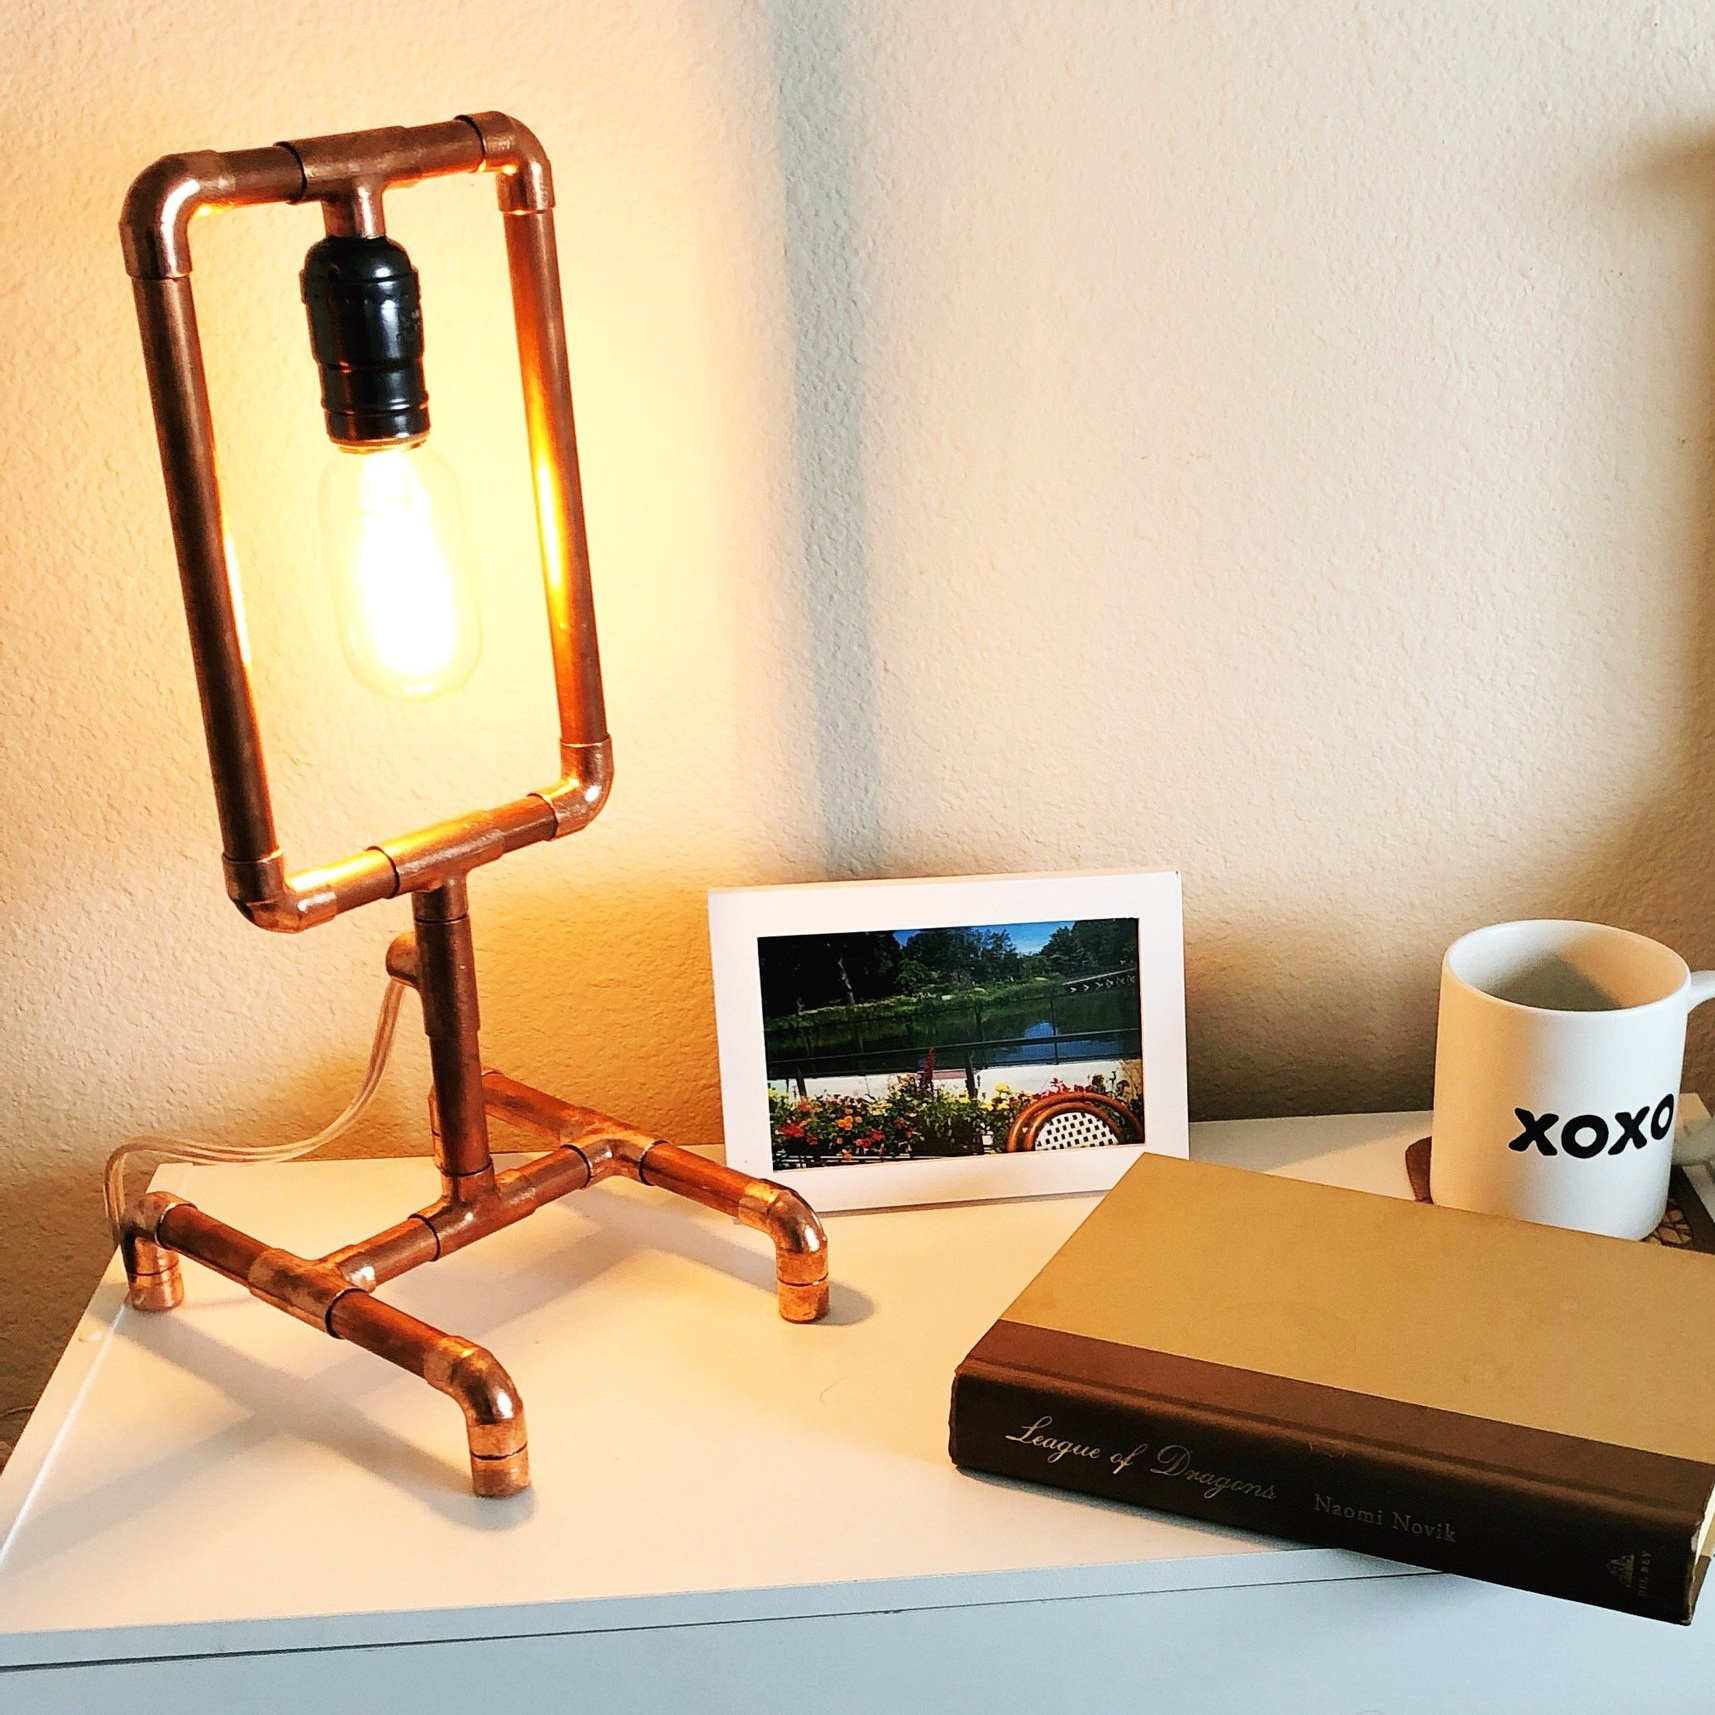 $85 - Copper Pipe Lamp Workshop  Learn to work with copper pipe, wire plugs and sockets, and build a lamp. Multiple designs to choose from.